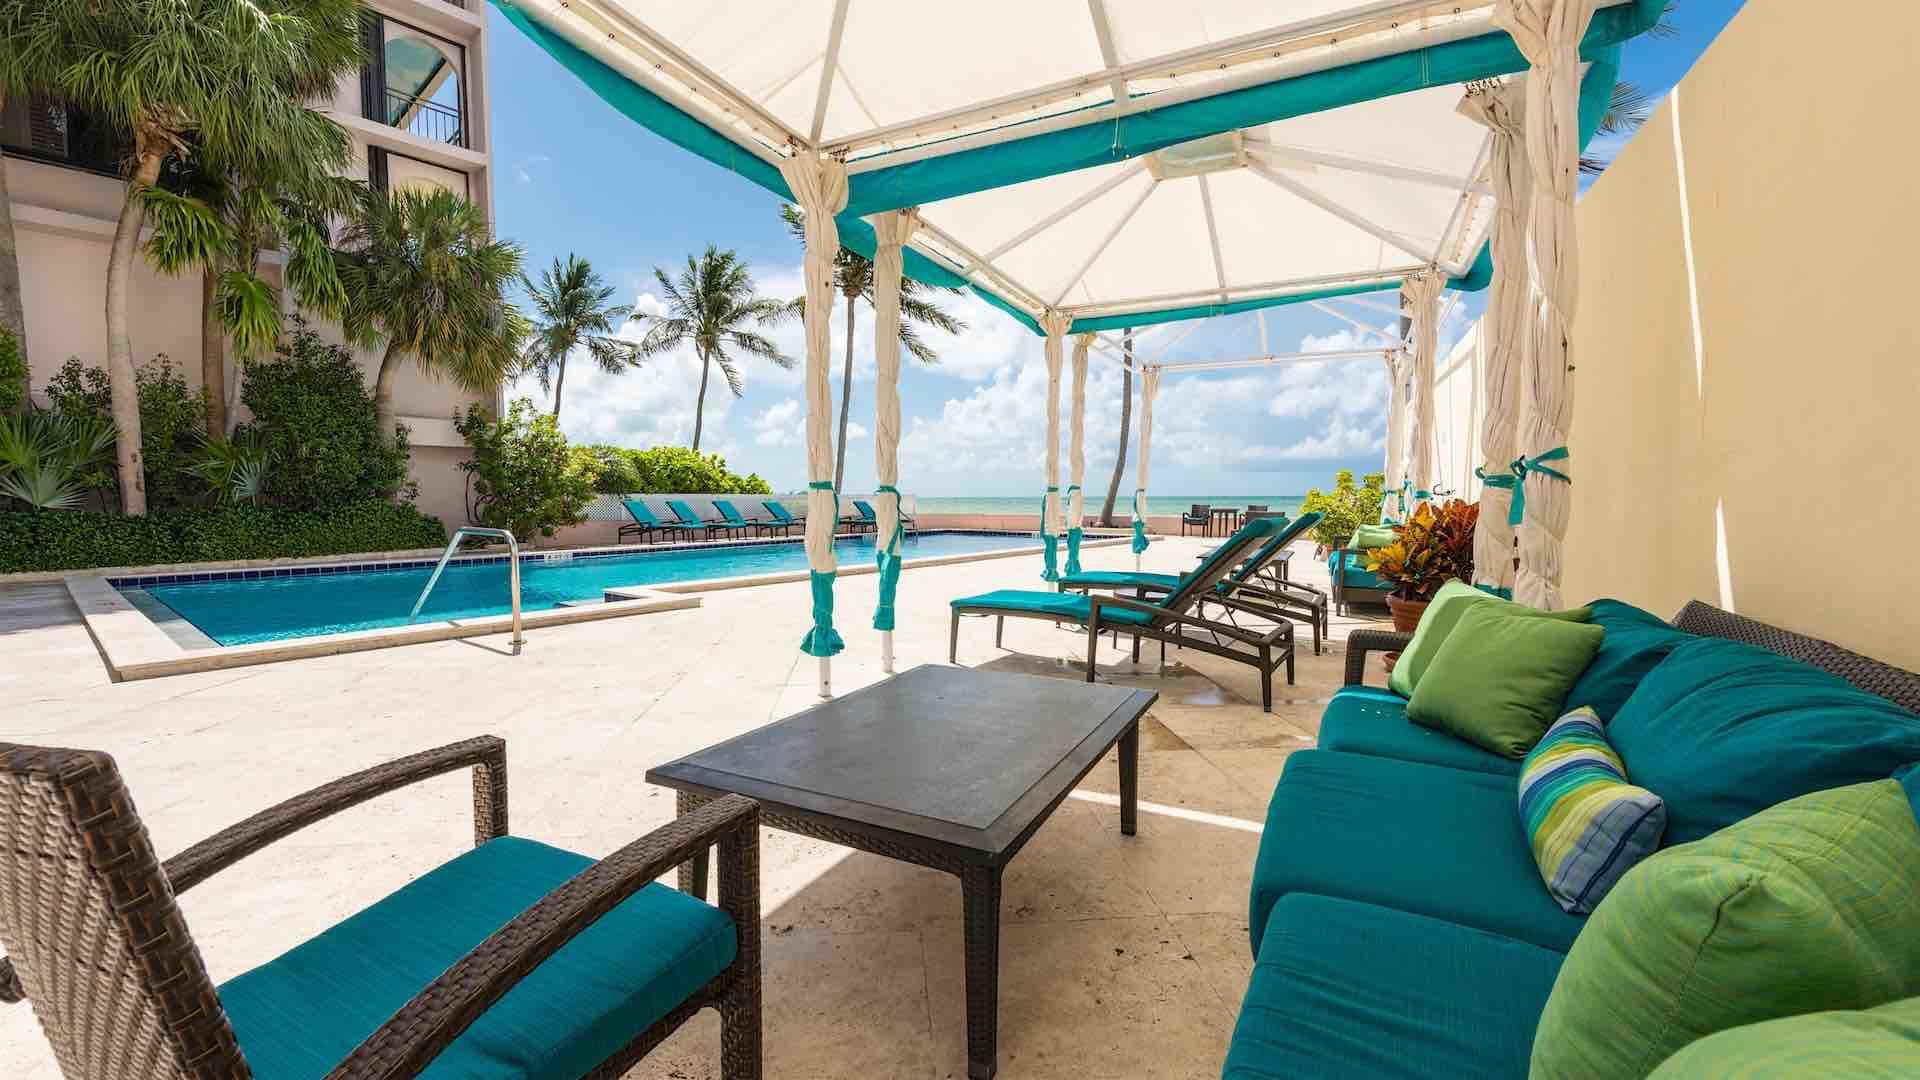 Escape the sun under the cabanas that have comfortable lounging options...